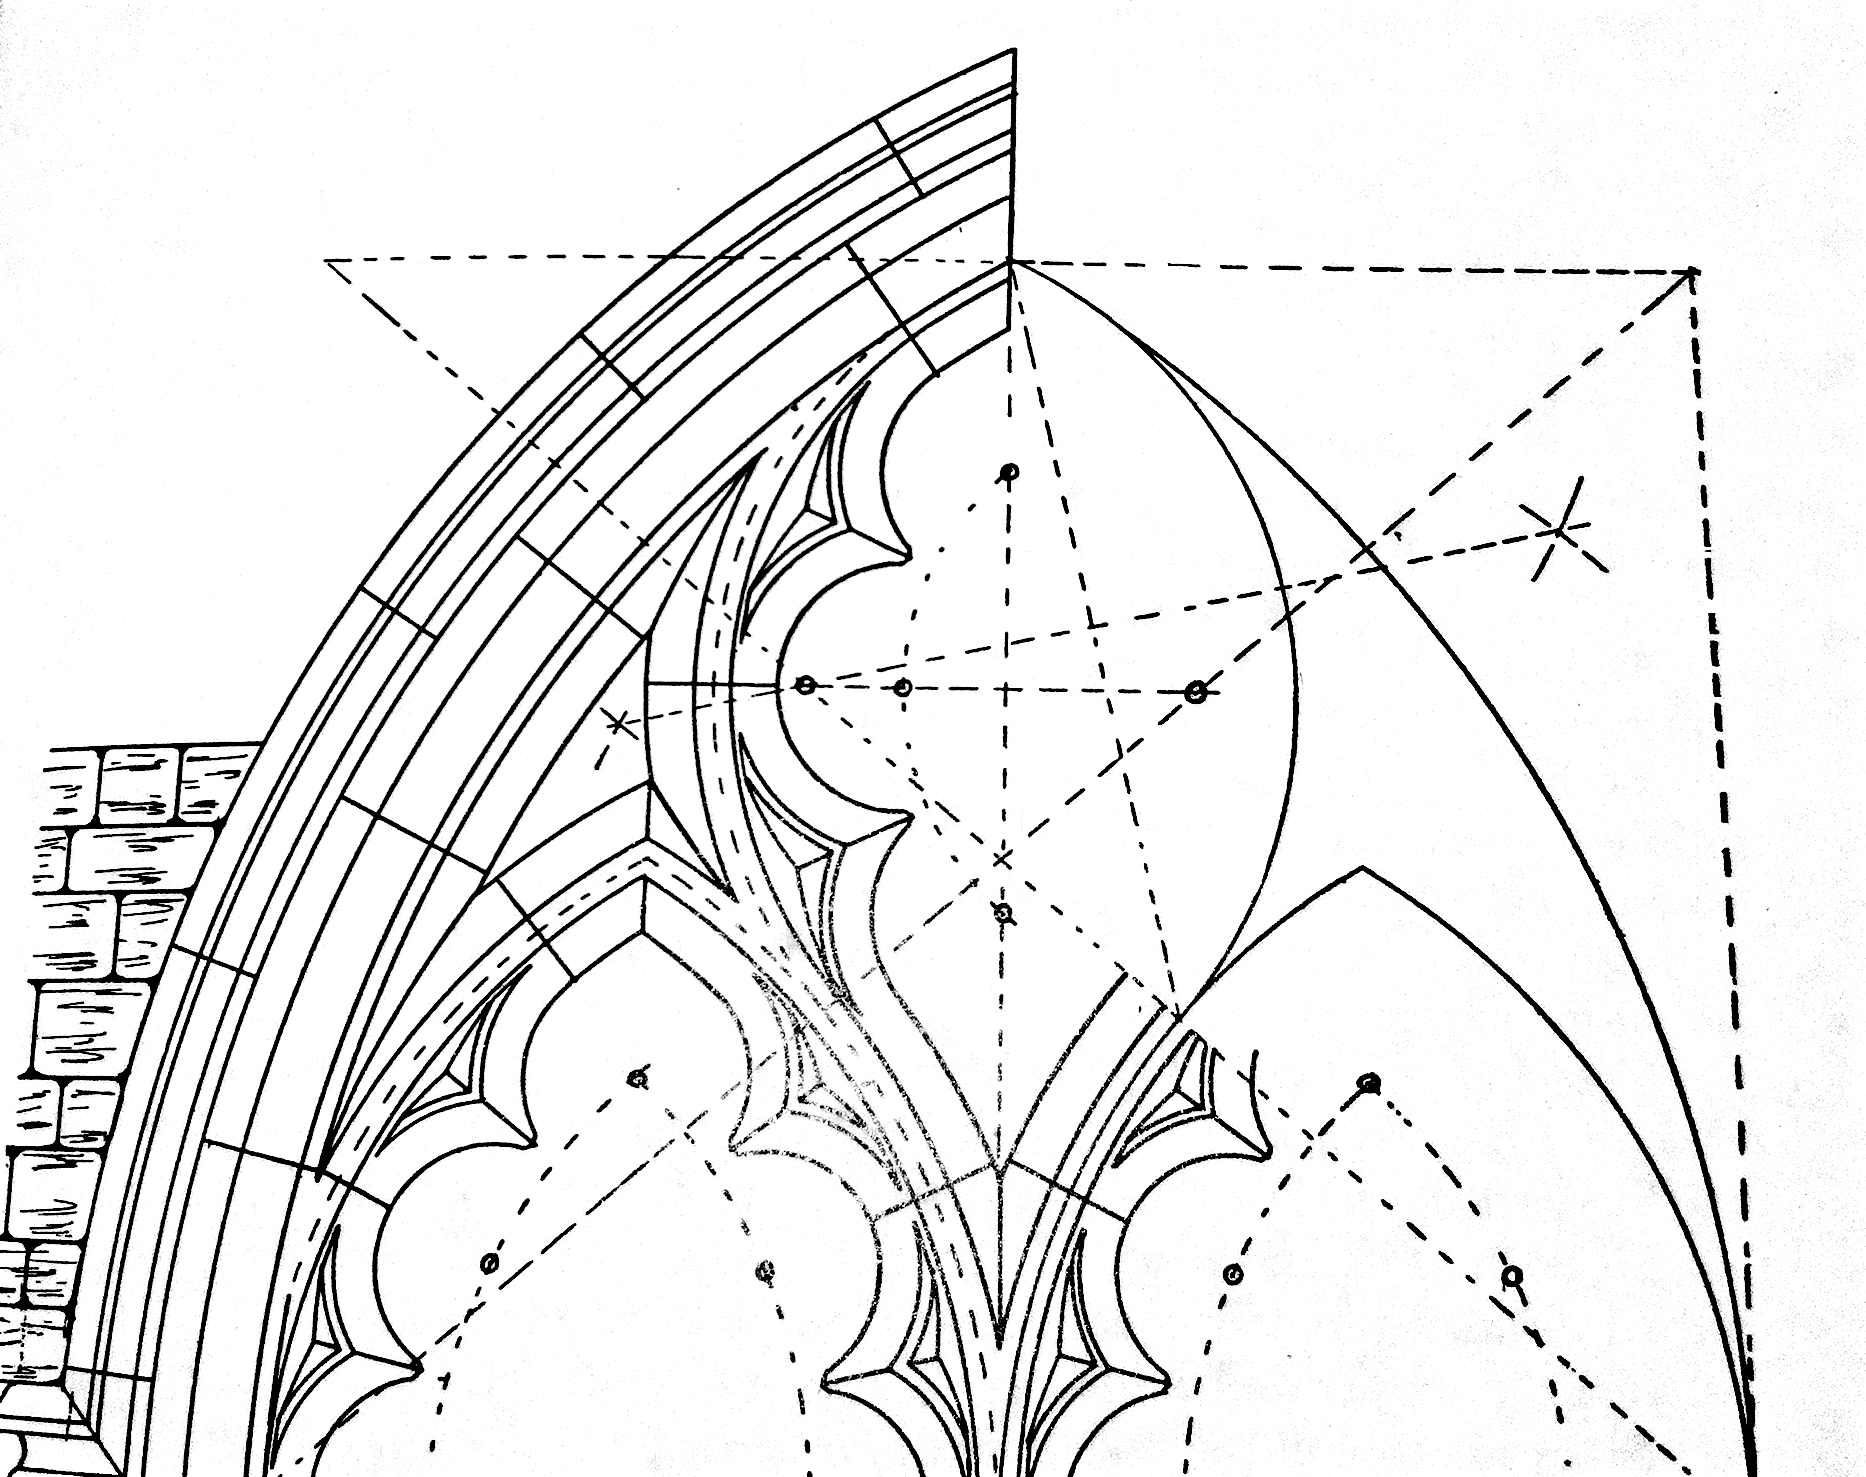 Building Drawing Gothic Architecture